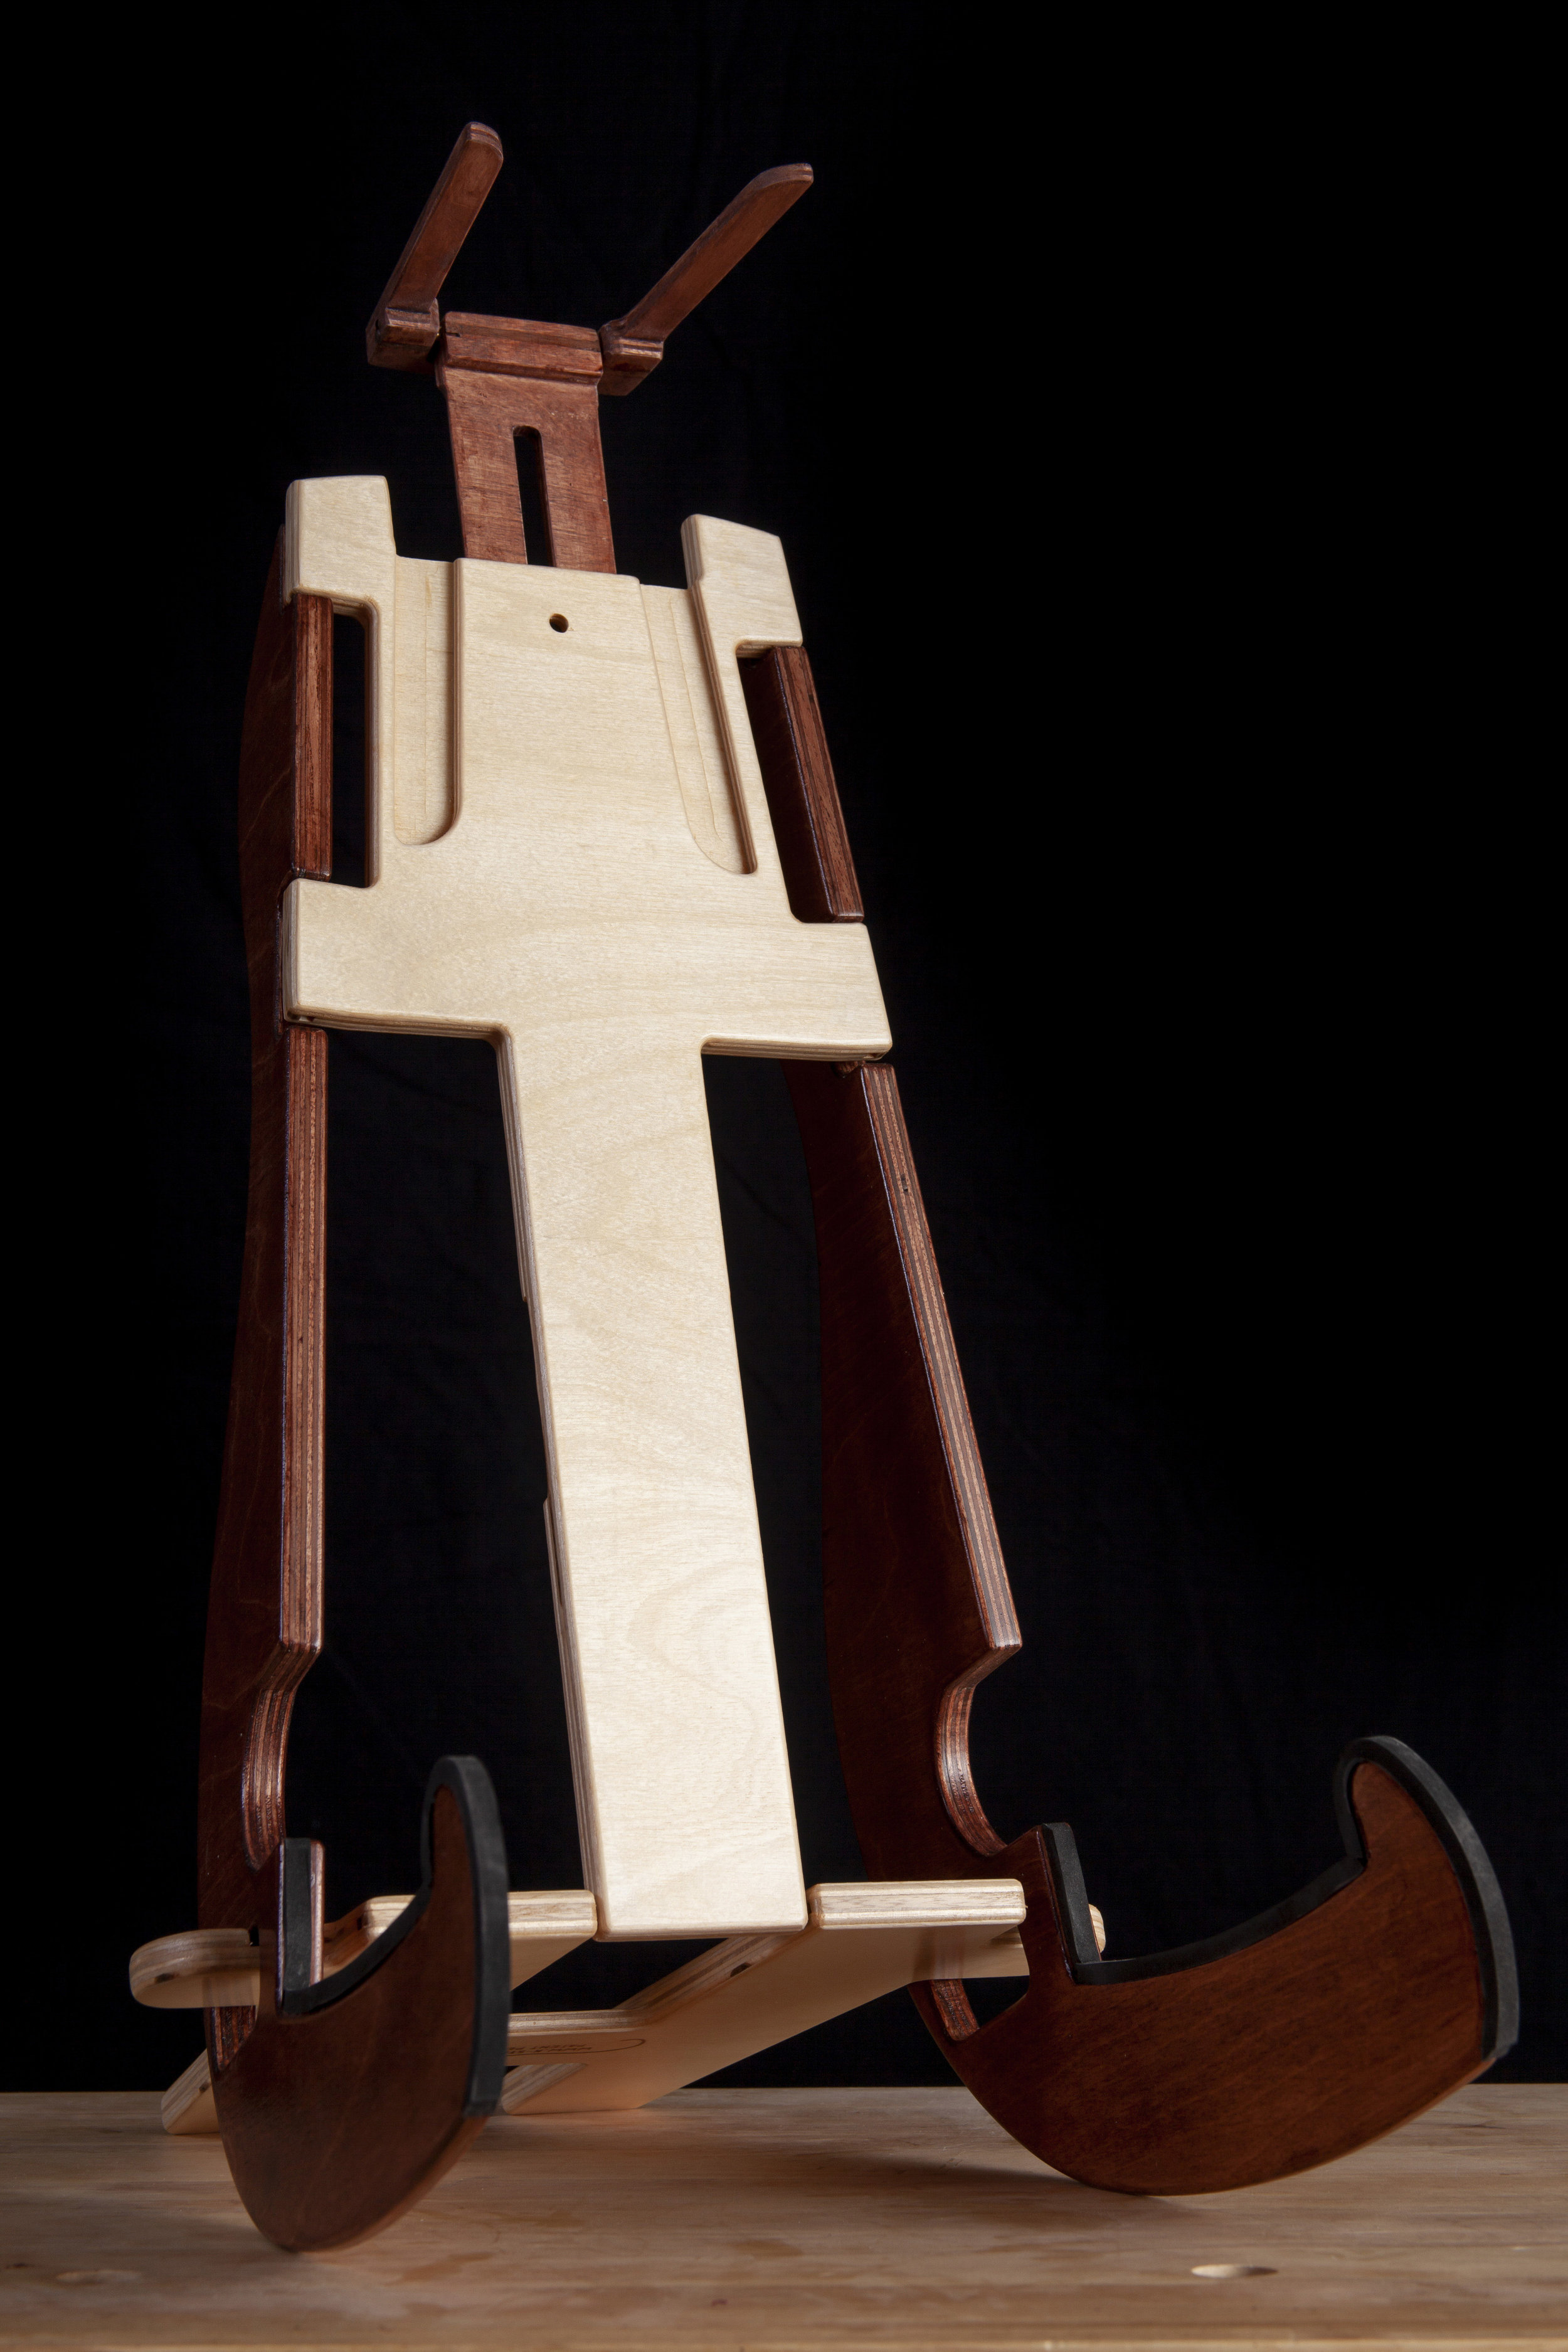 20 Inch tall K-Stand instrument stand holds full-sized Acoustic Guitar.